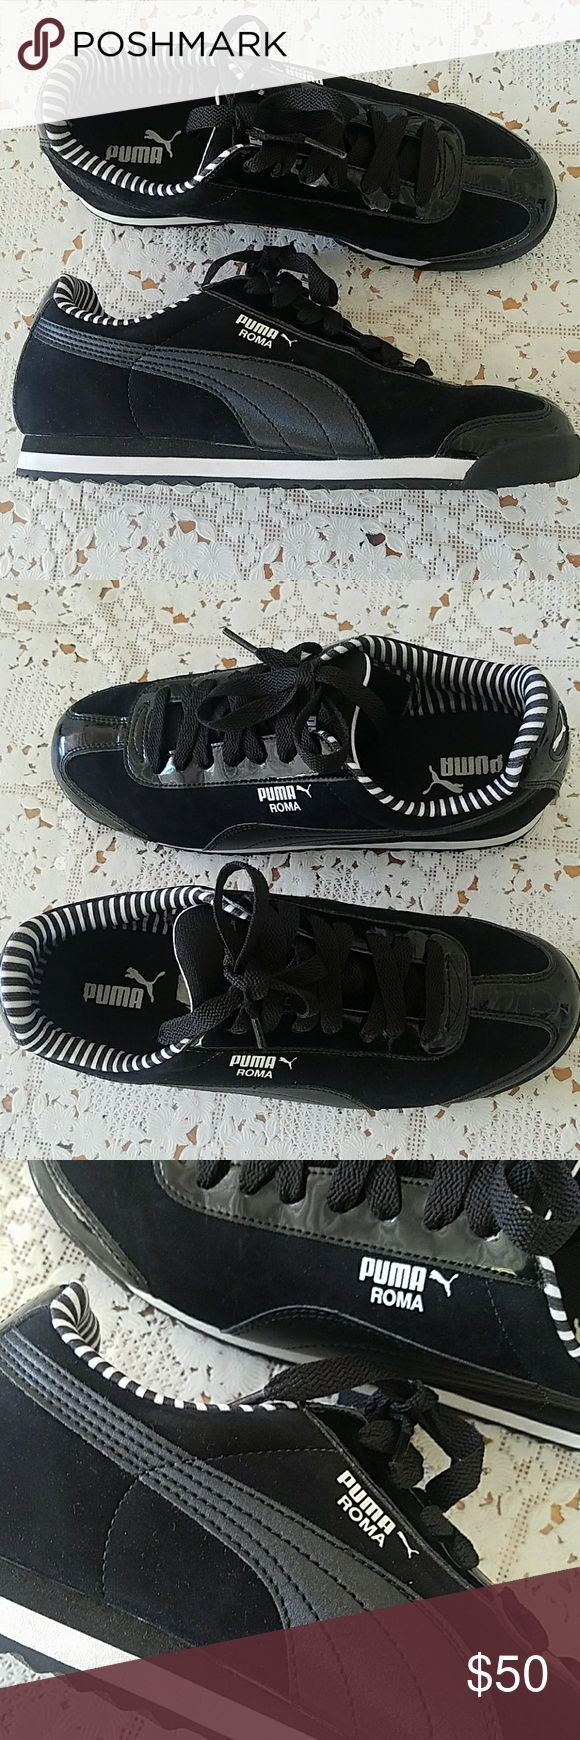 Puma Roma Sneakers Black suede puma roma sneakers with black and white strips inside. Worn once in brand new condition! I'm a true size 8 and they fit me a bit big. Can be both women's and men's. Super cute and comfy! Puma Shoes Sneakers